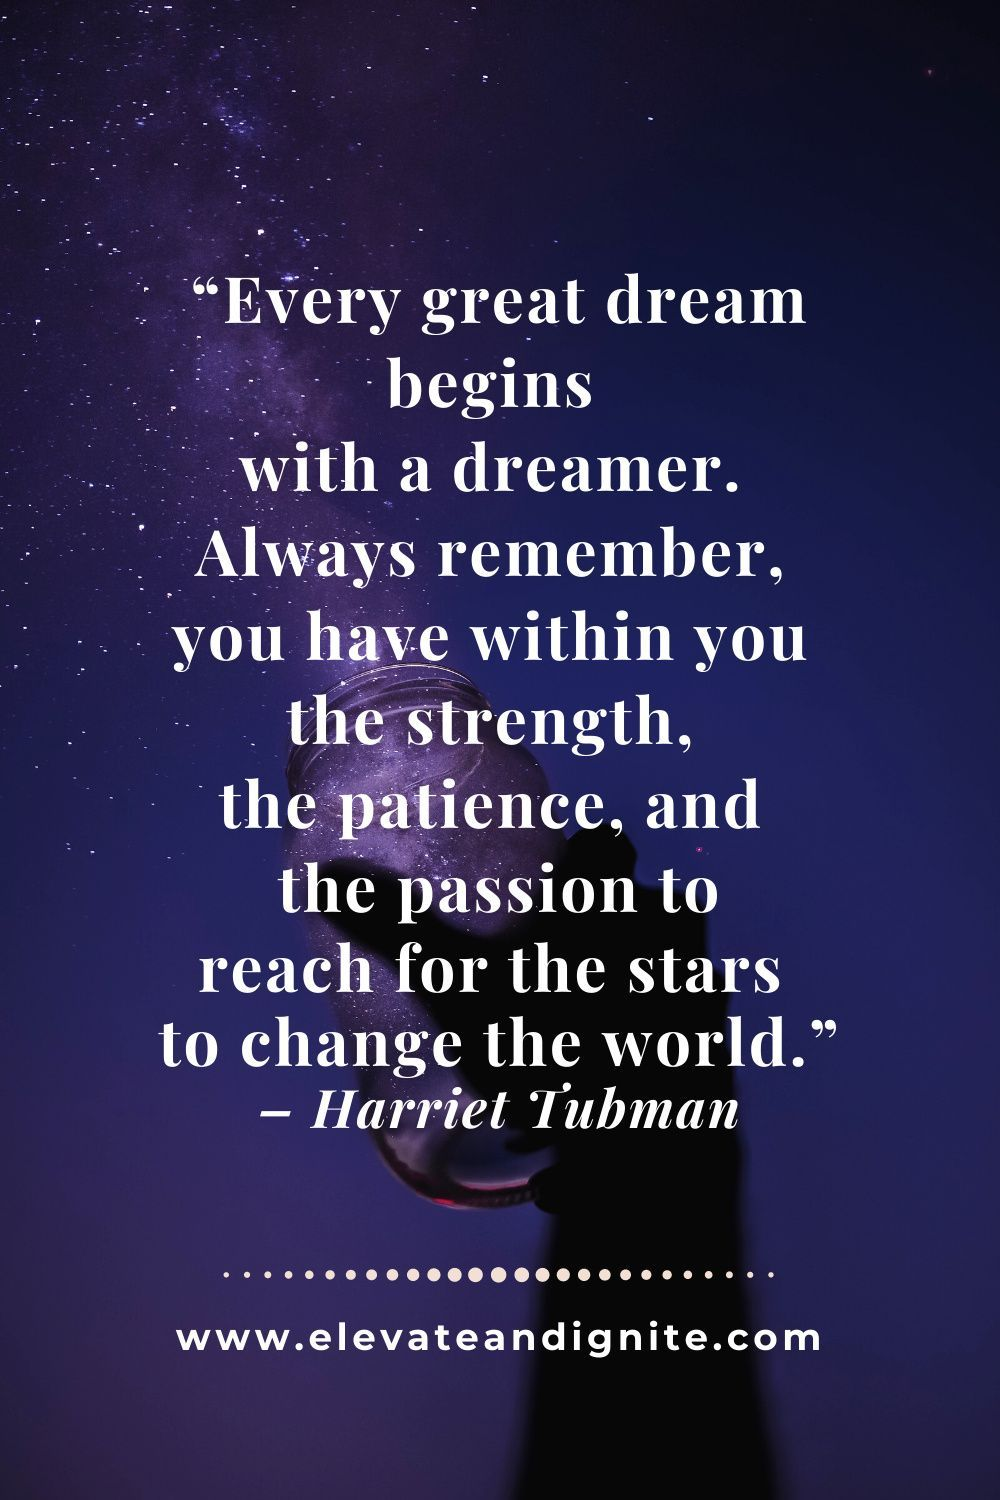 Follow Your Dreams Elevate Ignite Inspirational Quotes Confidence Healing Quotes Finding Happiness